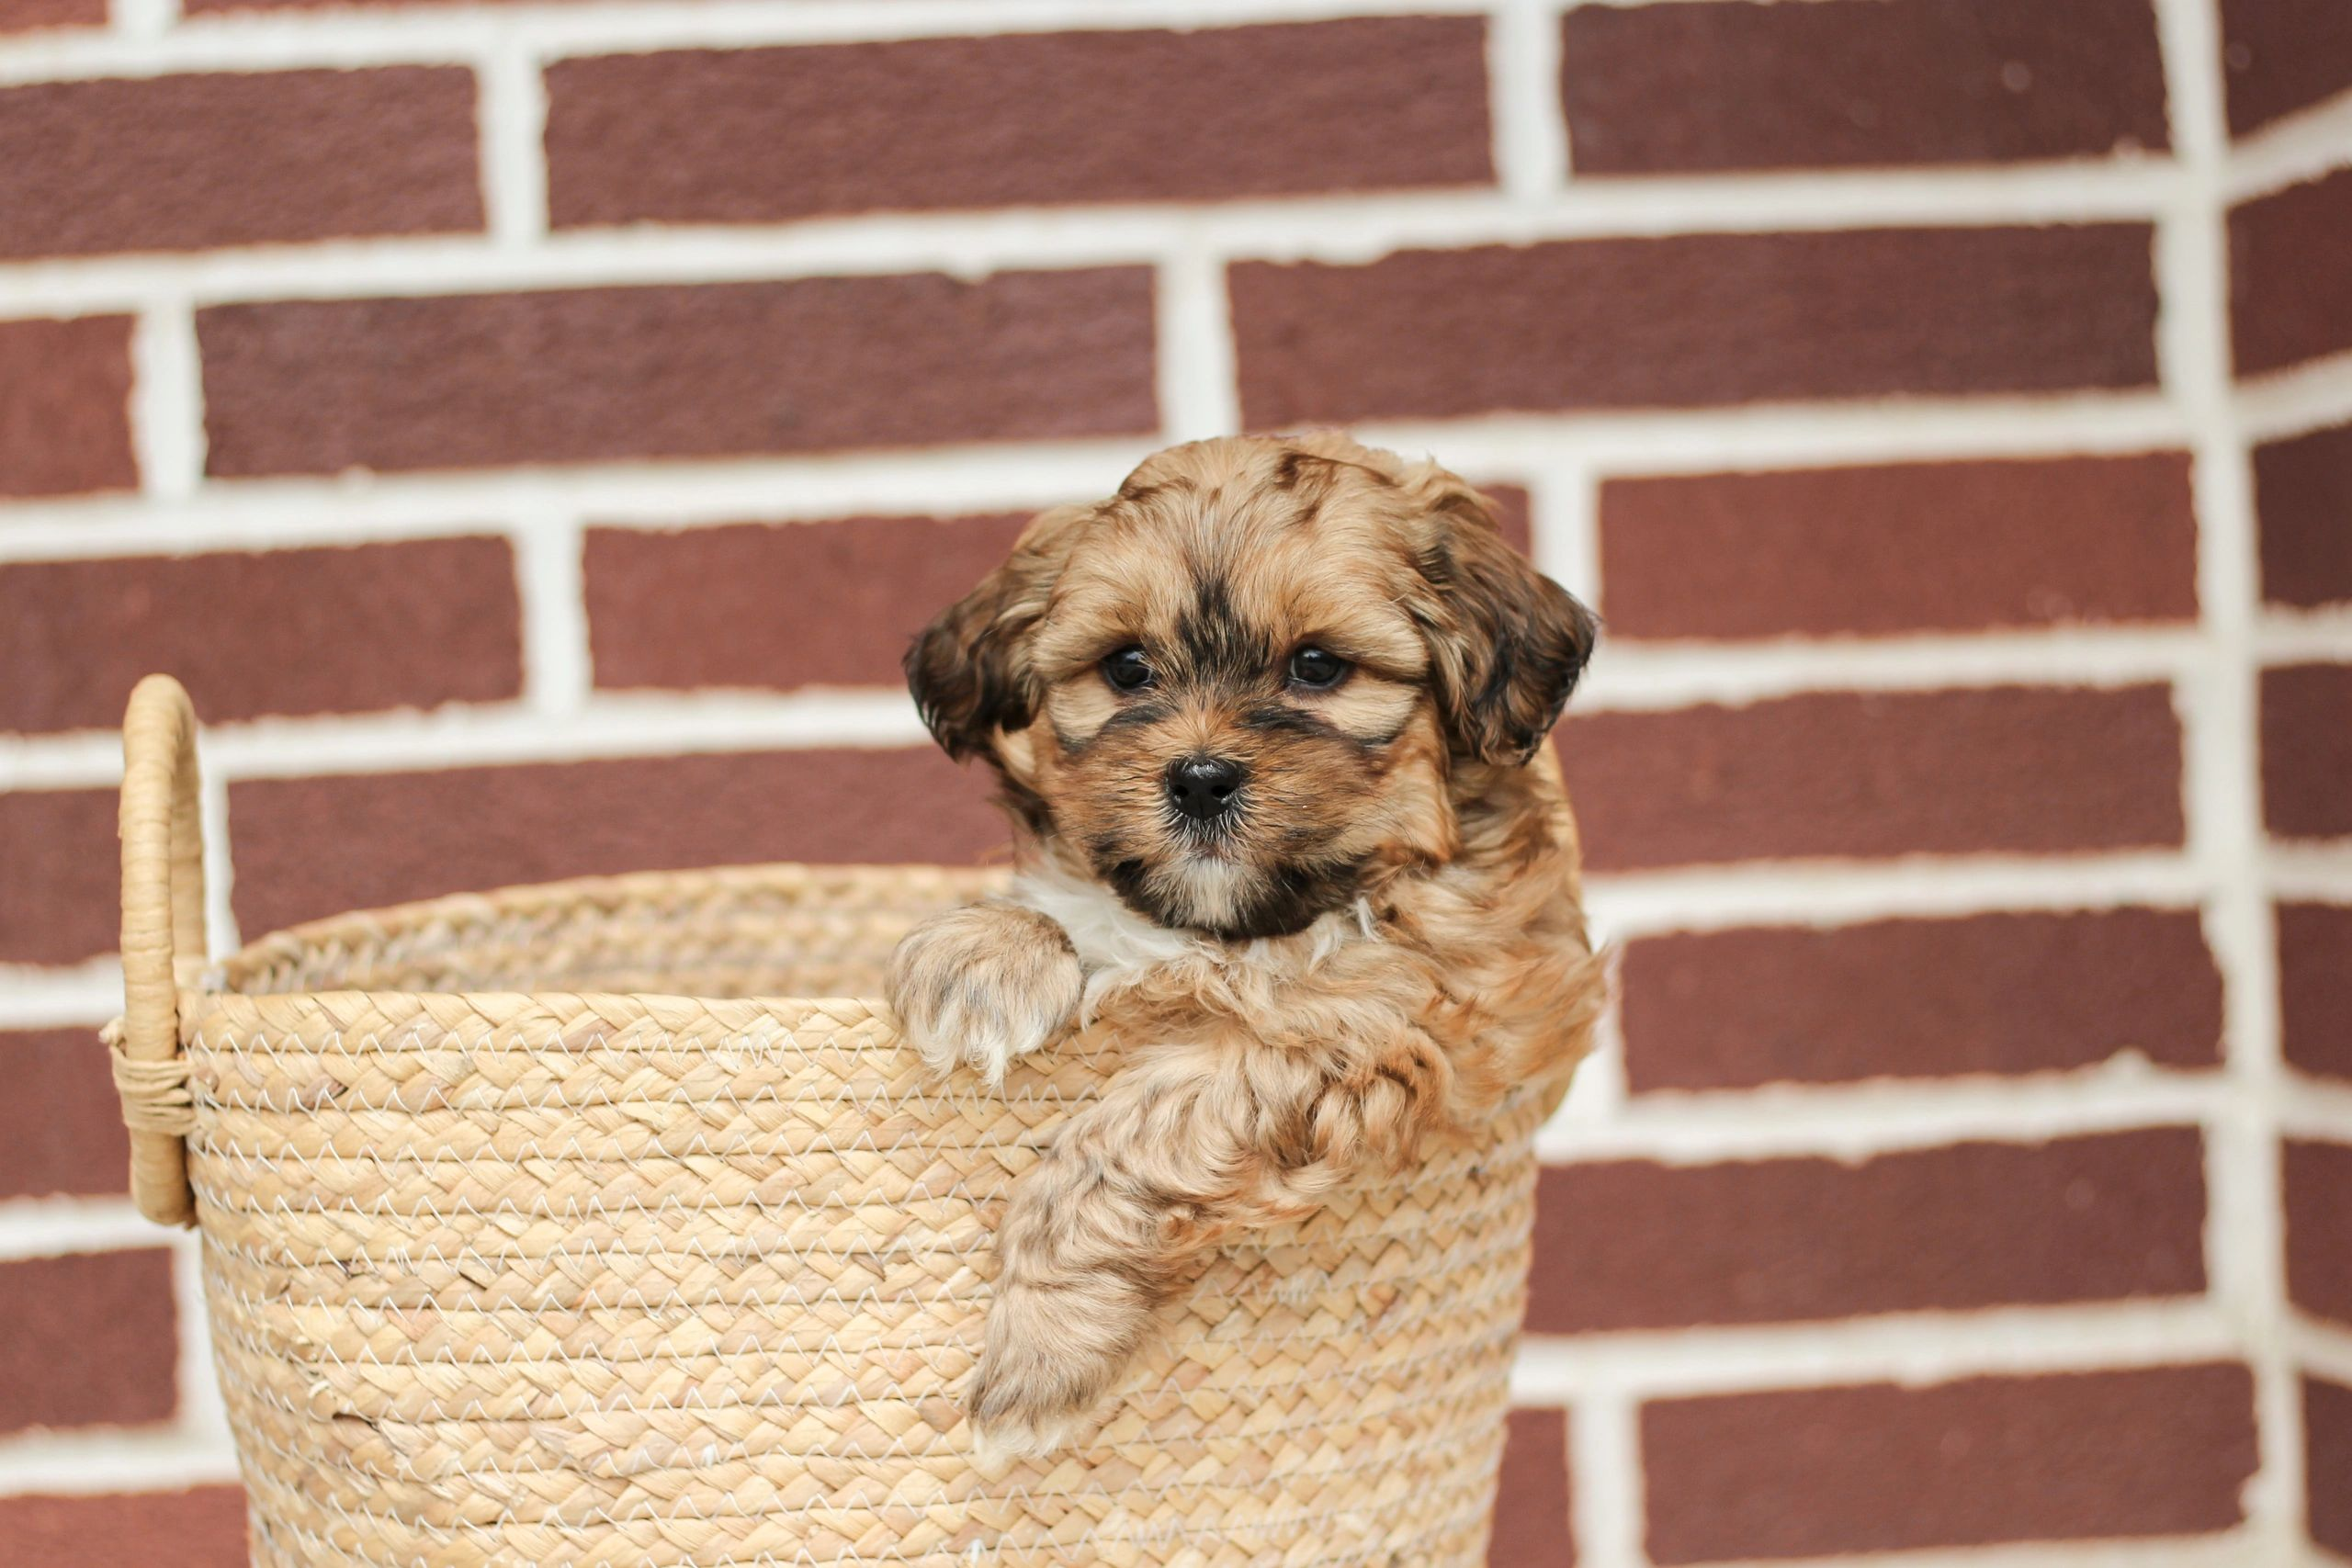 Shihpoo puppies for sale. shihtzu mix puppies I miniature poodle mix puppies I F1 hybrid puppies